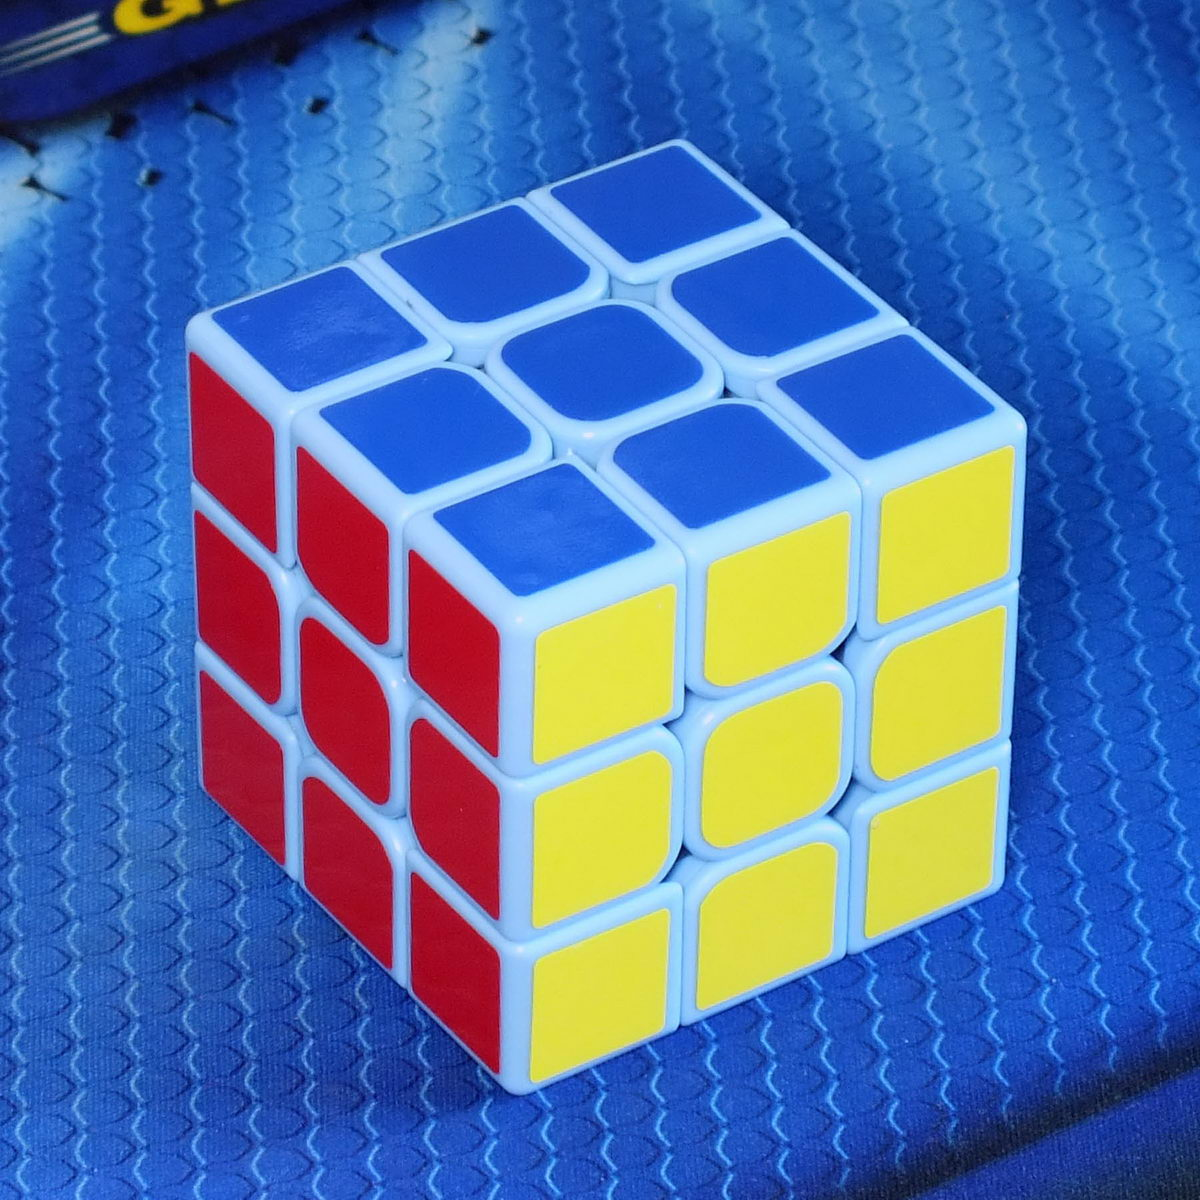 Moyu Aolong GT 3x3 blue